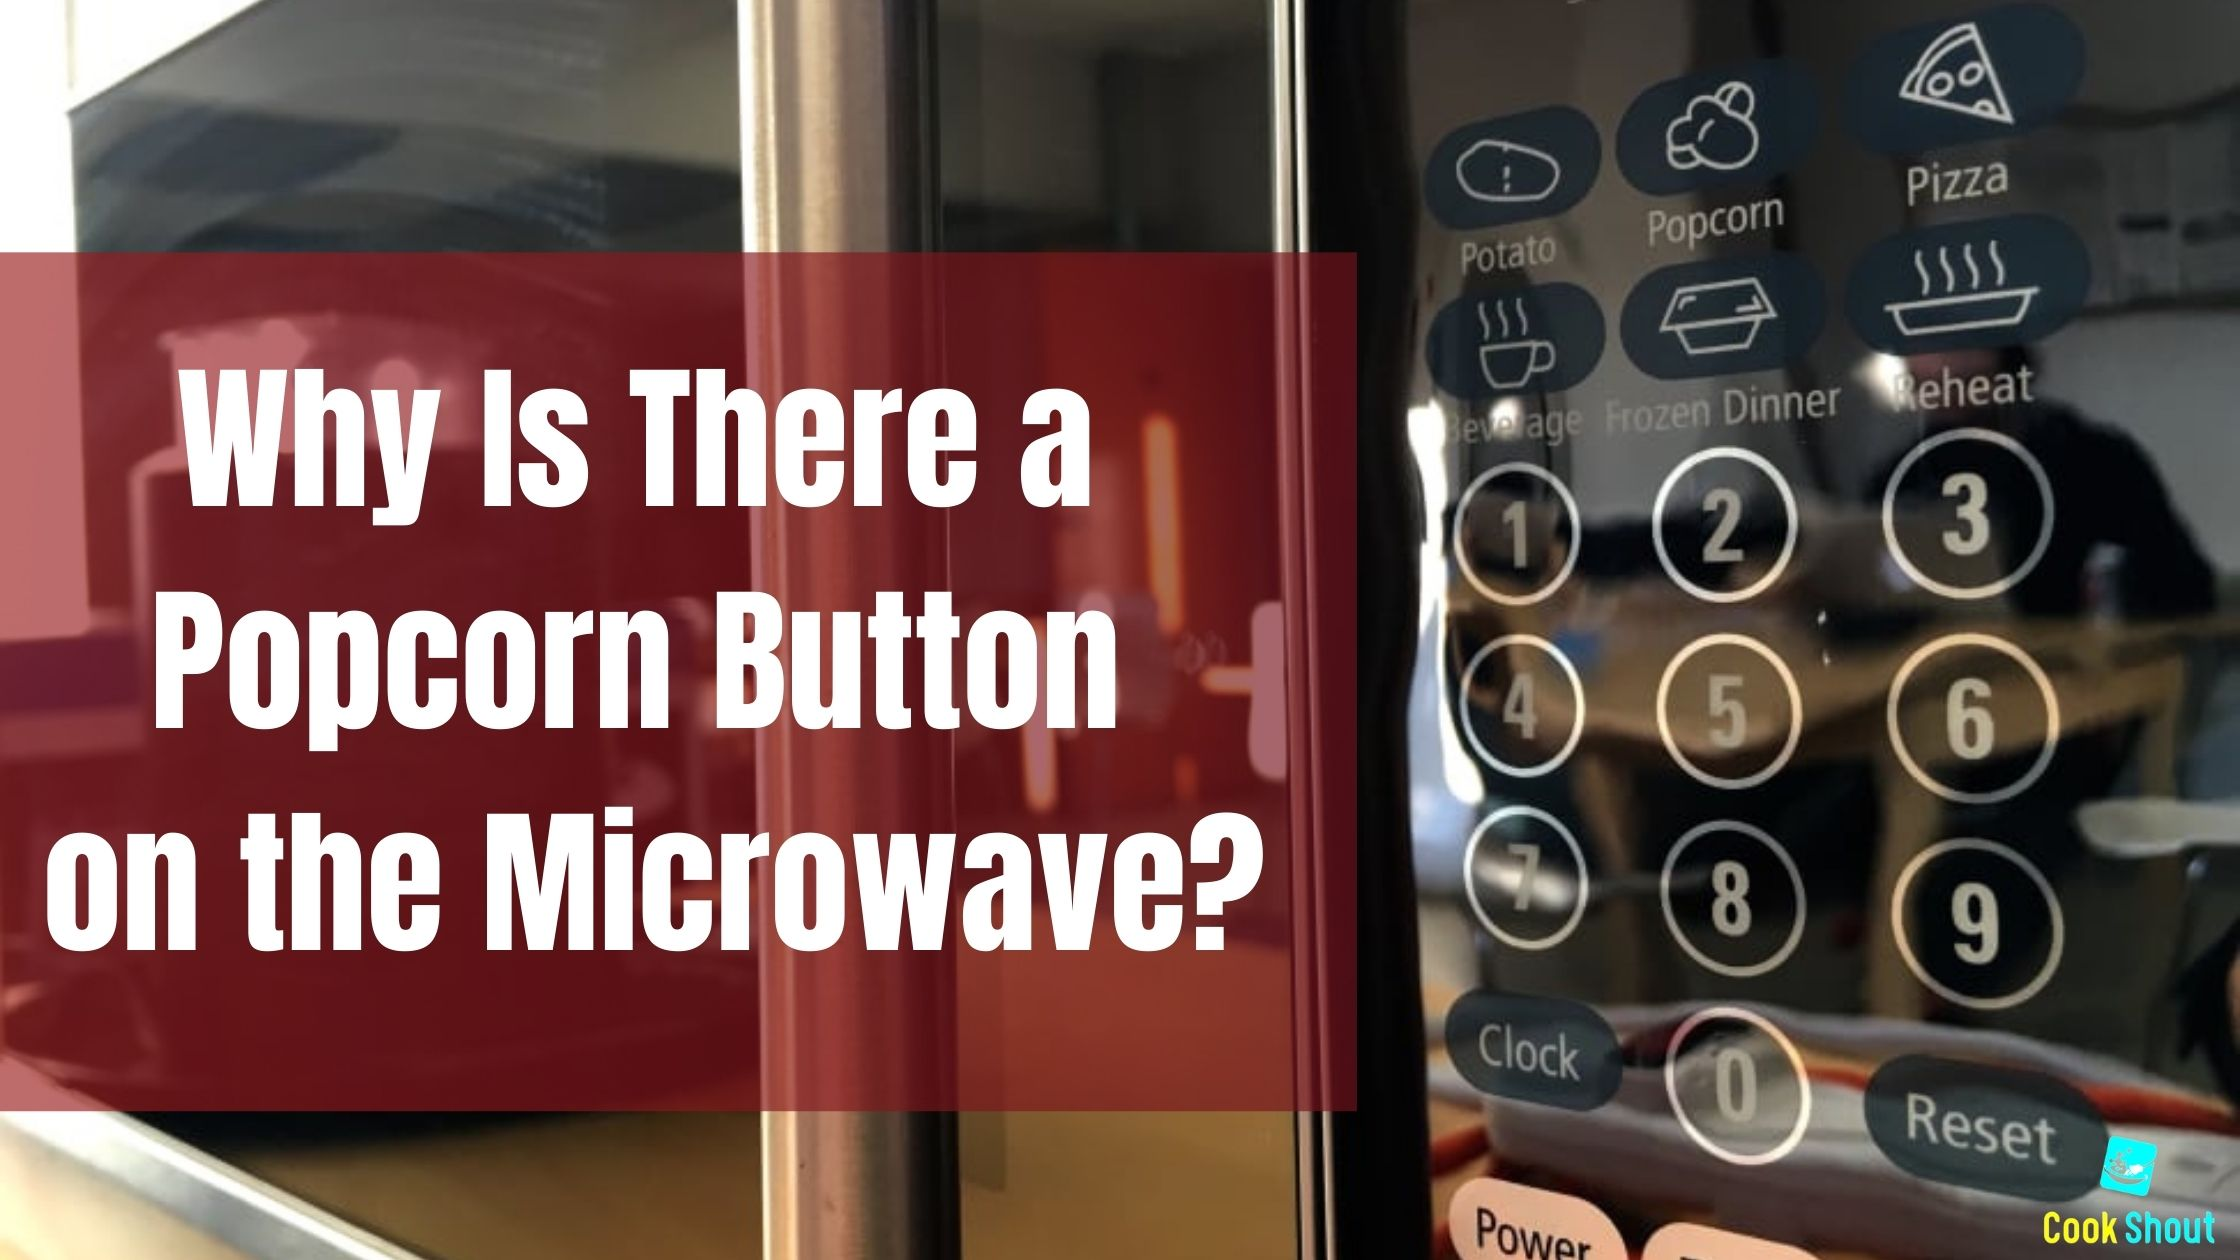 Why Is There a Popcorn Button on the Microwave?